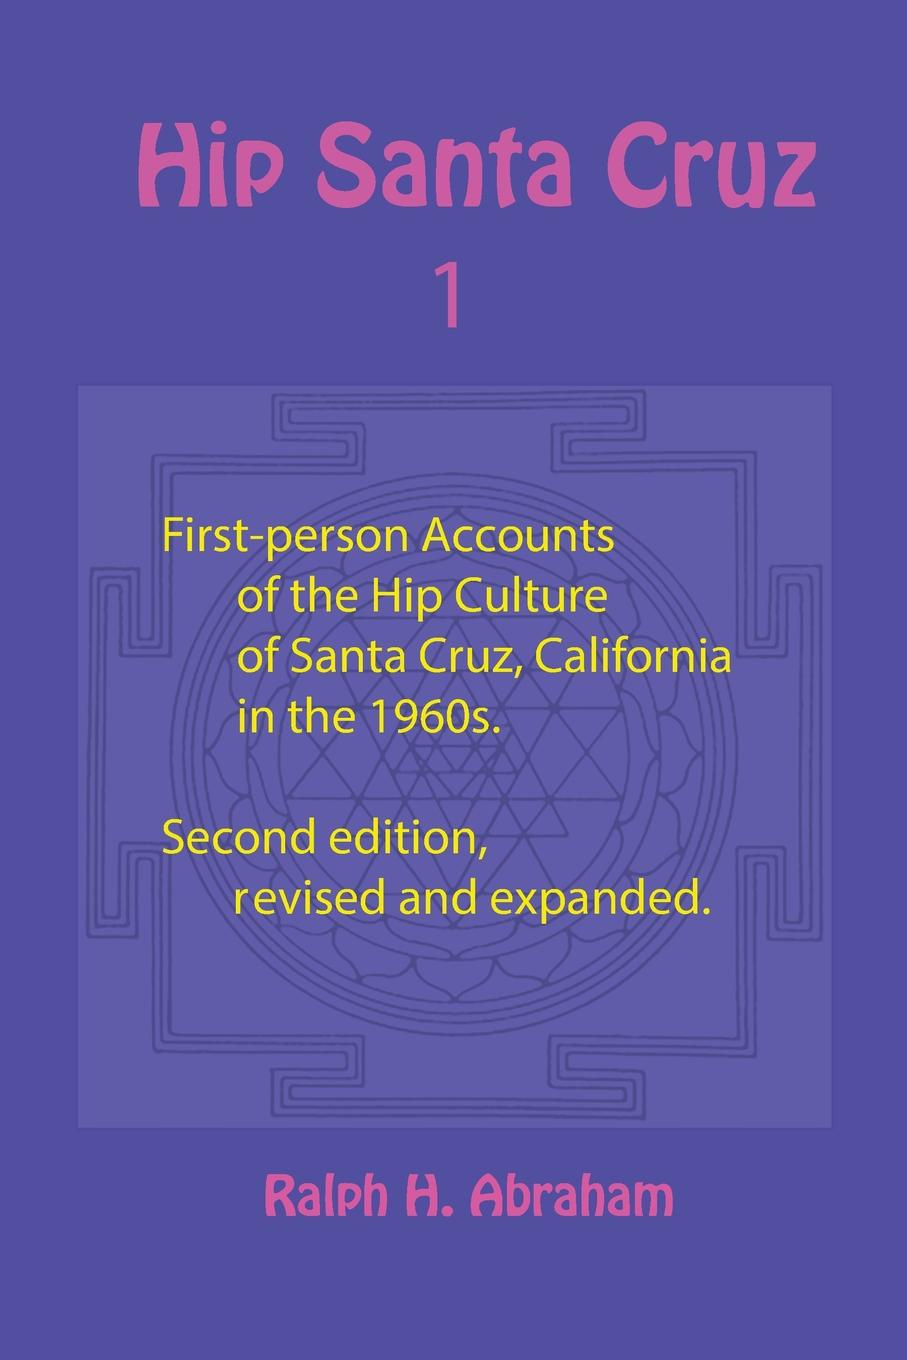 Hip Santa Cruz. First-Person Accounts of the Hip Culture of Santa Cruz, California in the 1960s santa cruz simpsons duff can complete 10 5x27 5 sale skateboarding completes